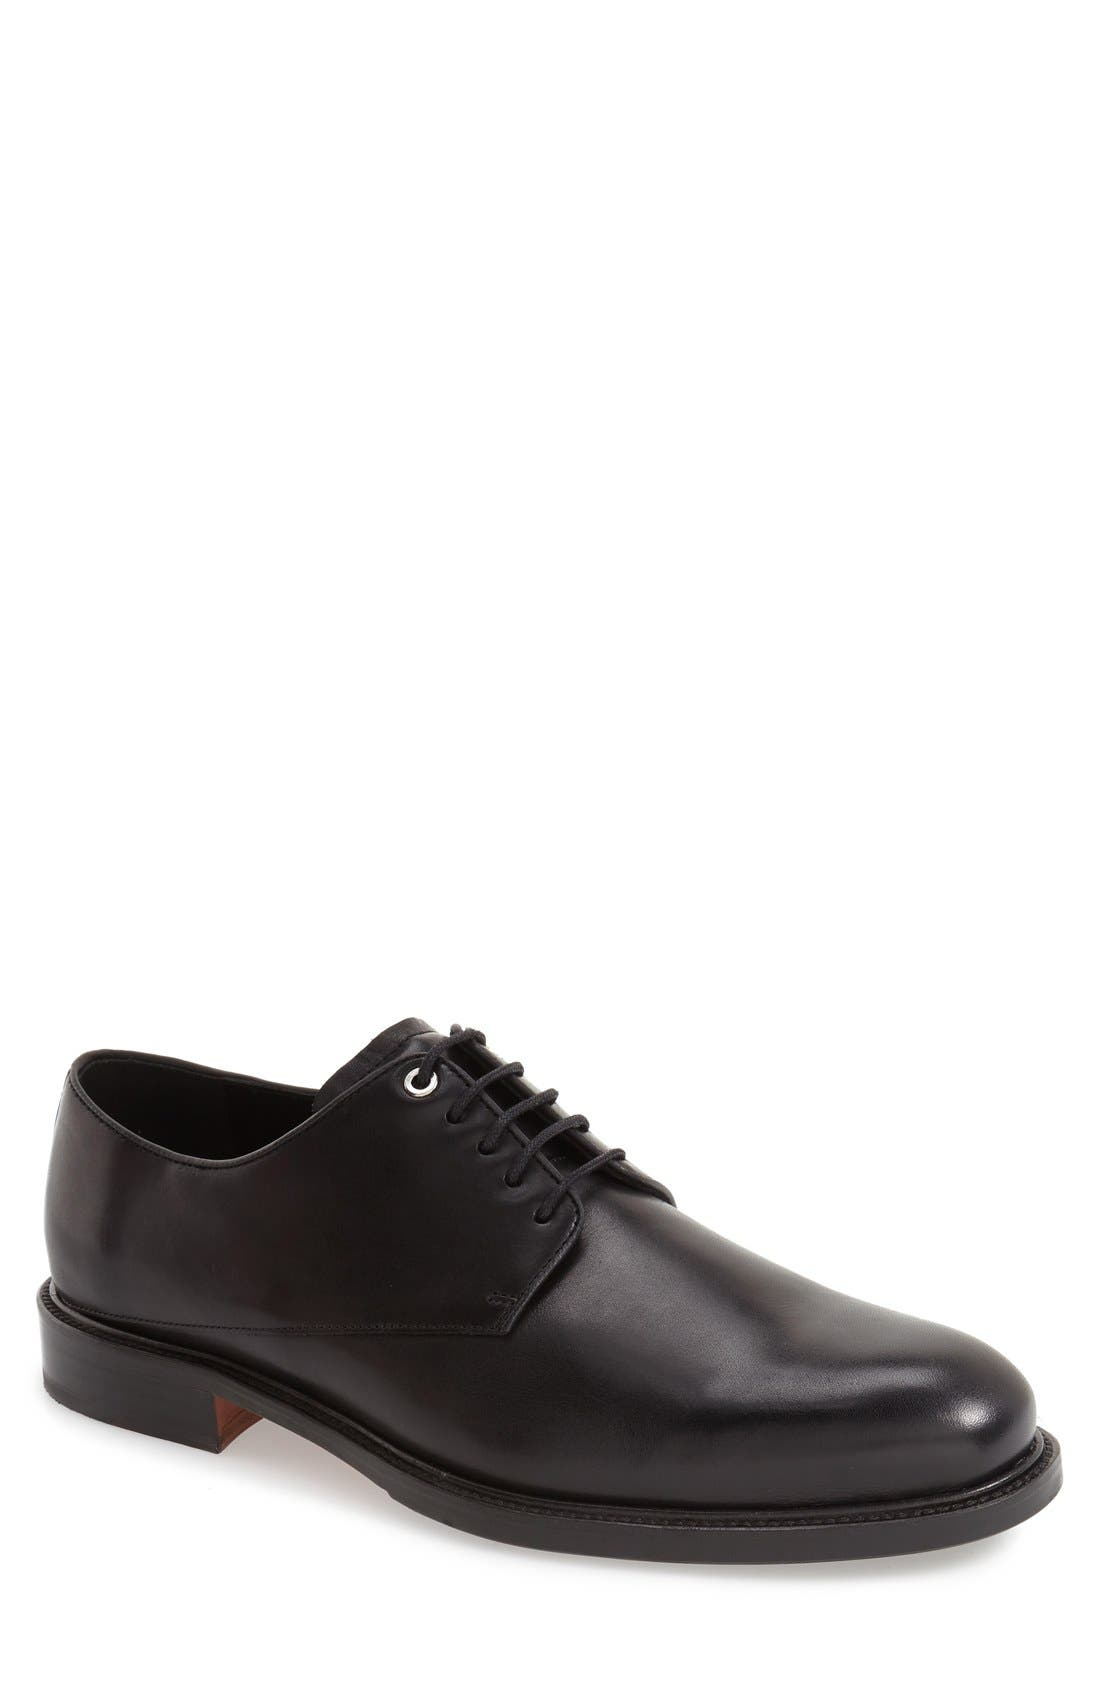 WANT LES ESSENTIELS 'Benson' Plain Toe Derby (Men)